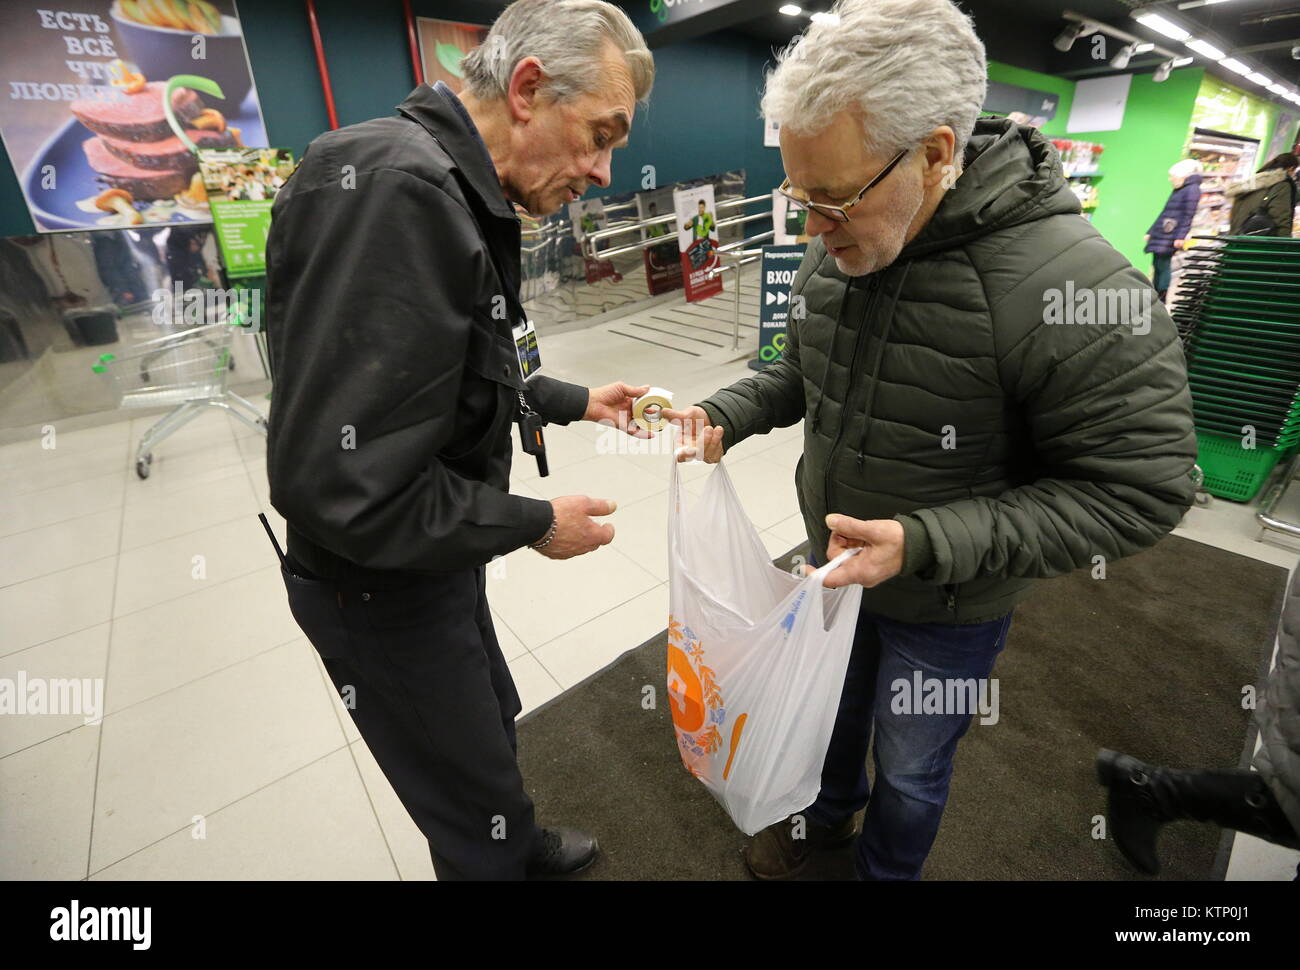 St Petersburg, Russia. 28th Dec, 2017. A security guard examines a customer's bag outside a Perekrestok supermarket. Stock Photo